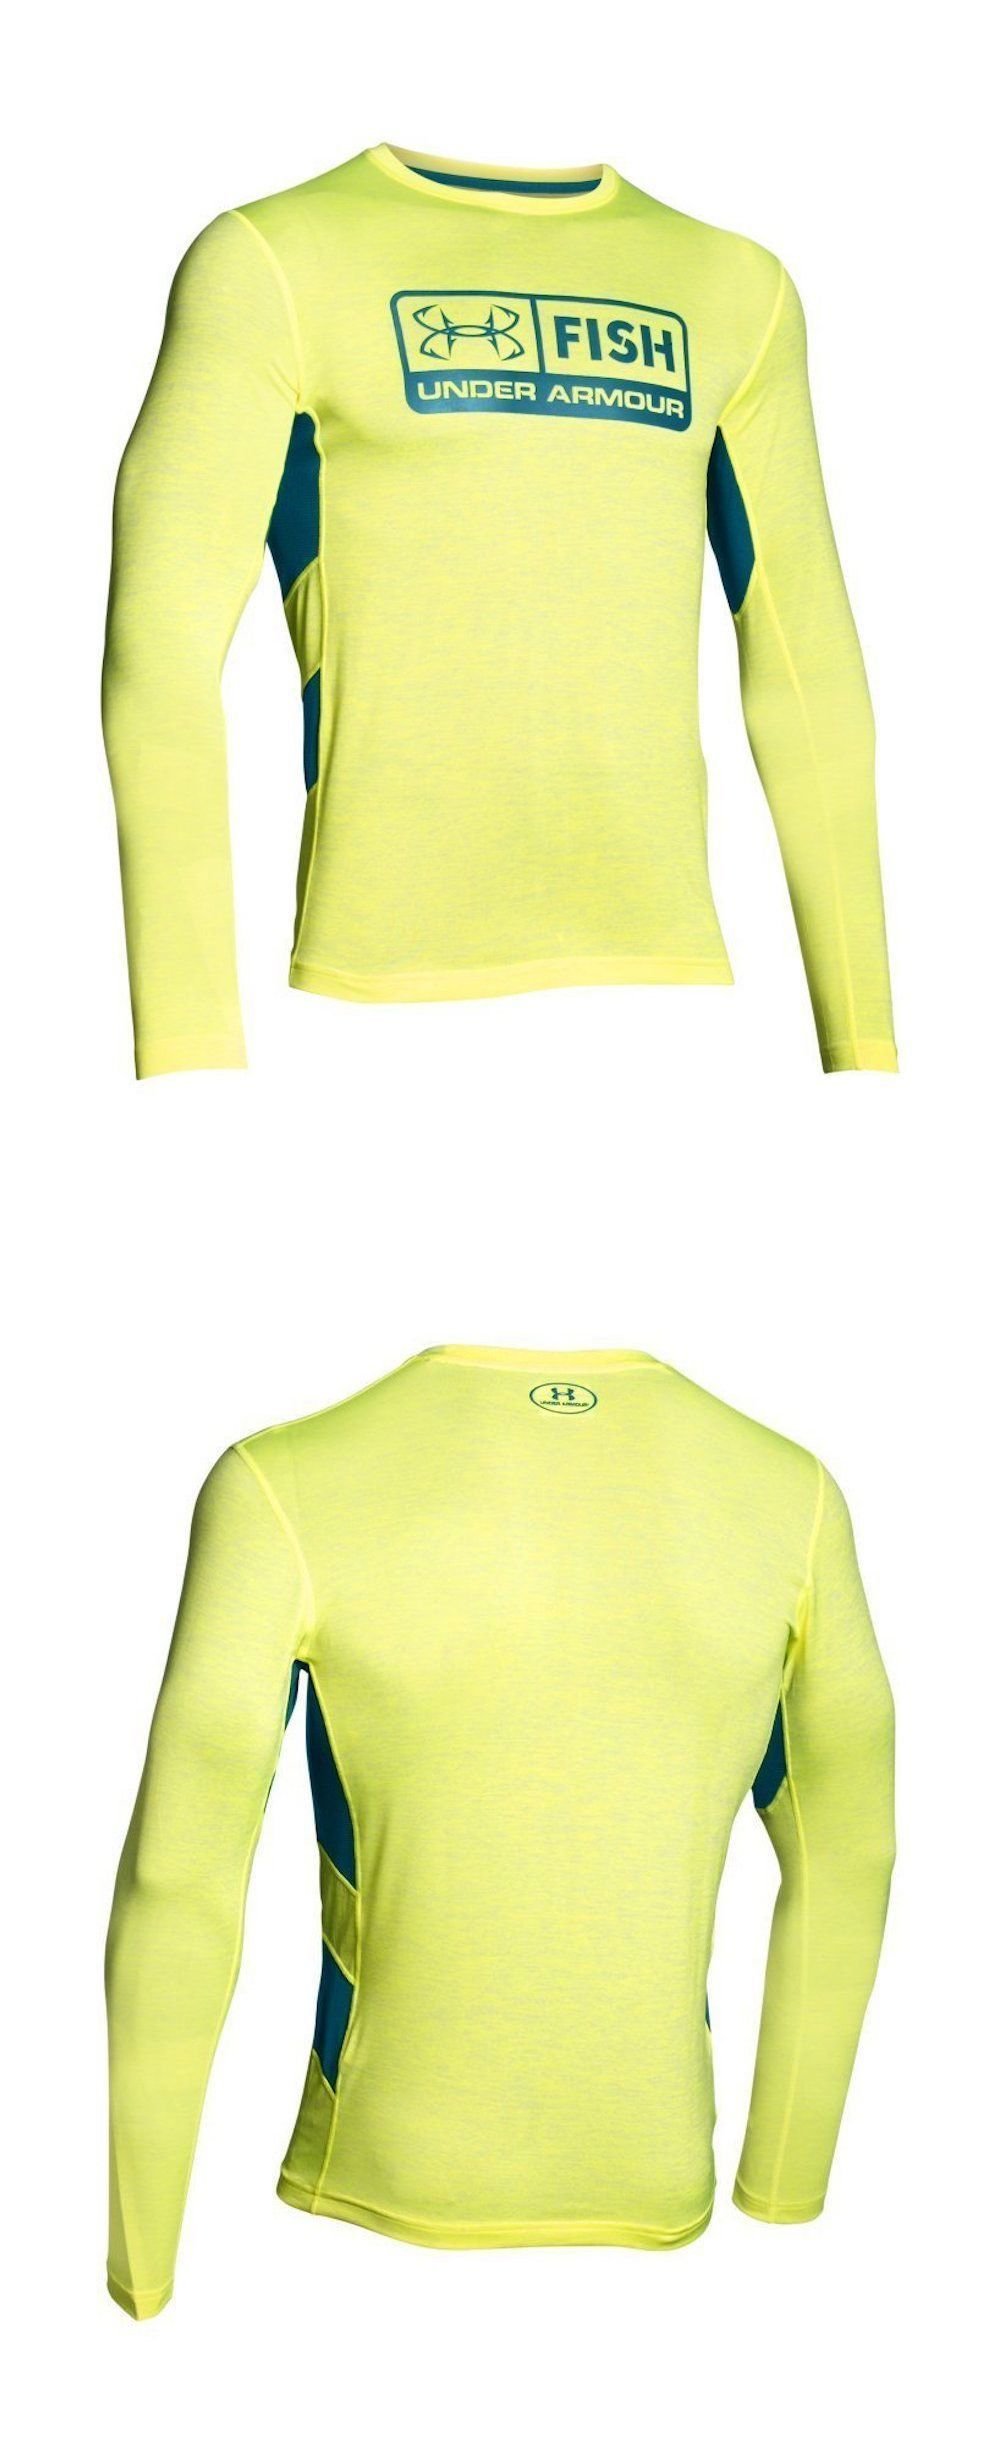 Shirts and tops new under armour fish hunter tech long